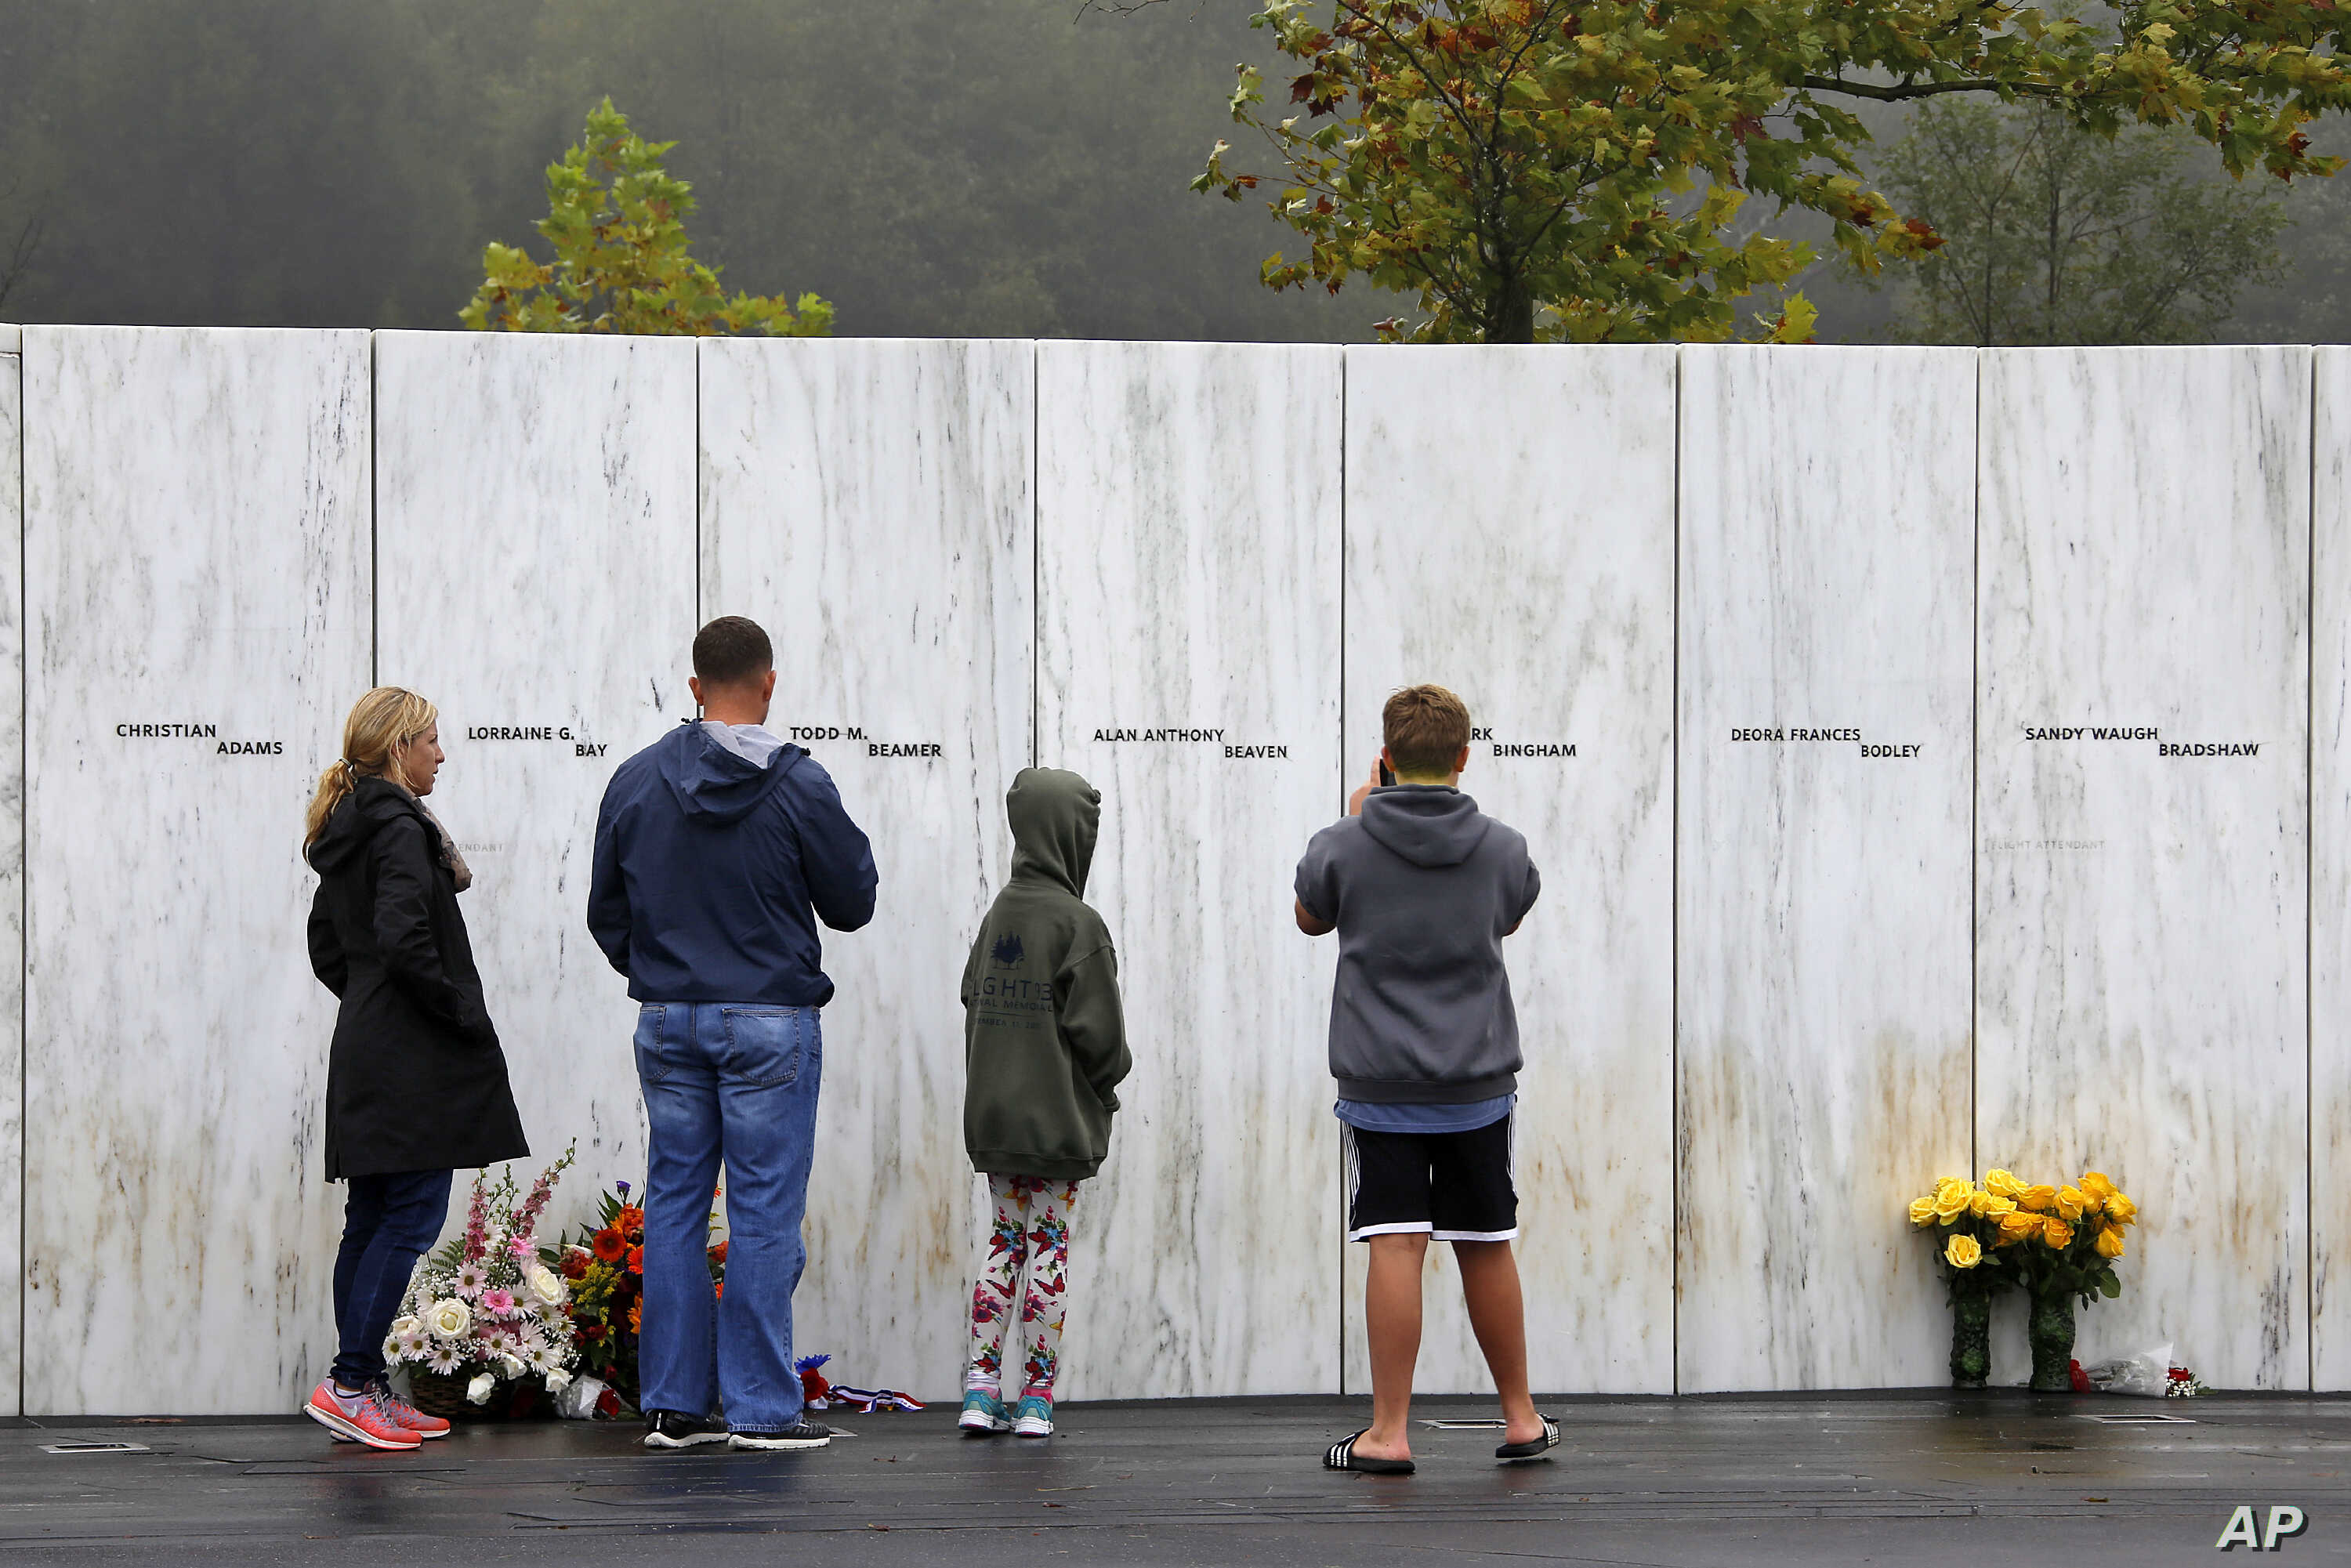 Visitors to the Flight 93 National Memorial in Shanksville, Pa., participate in a sunset memorial service on Monday, Sept. 10, 2018, as the nation marks the 17th anniversary of the Sept. 11, 2001 attacks.